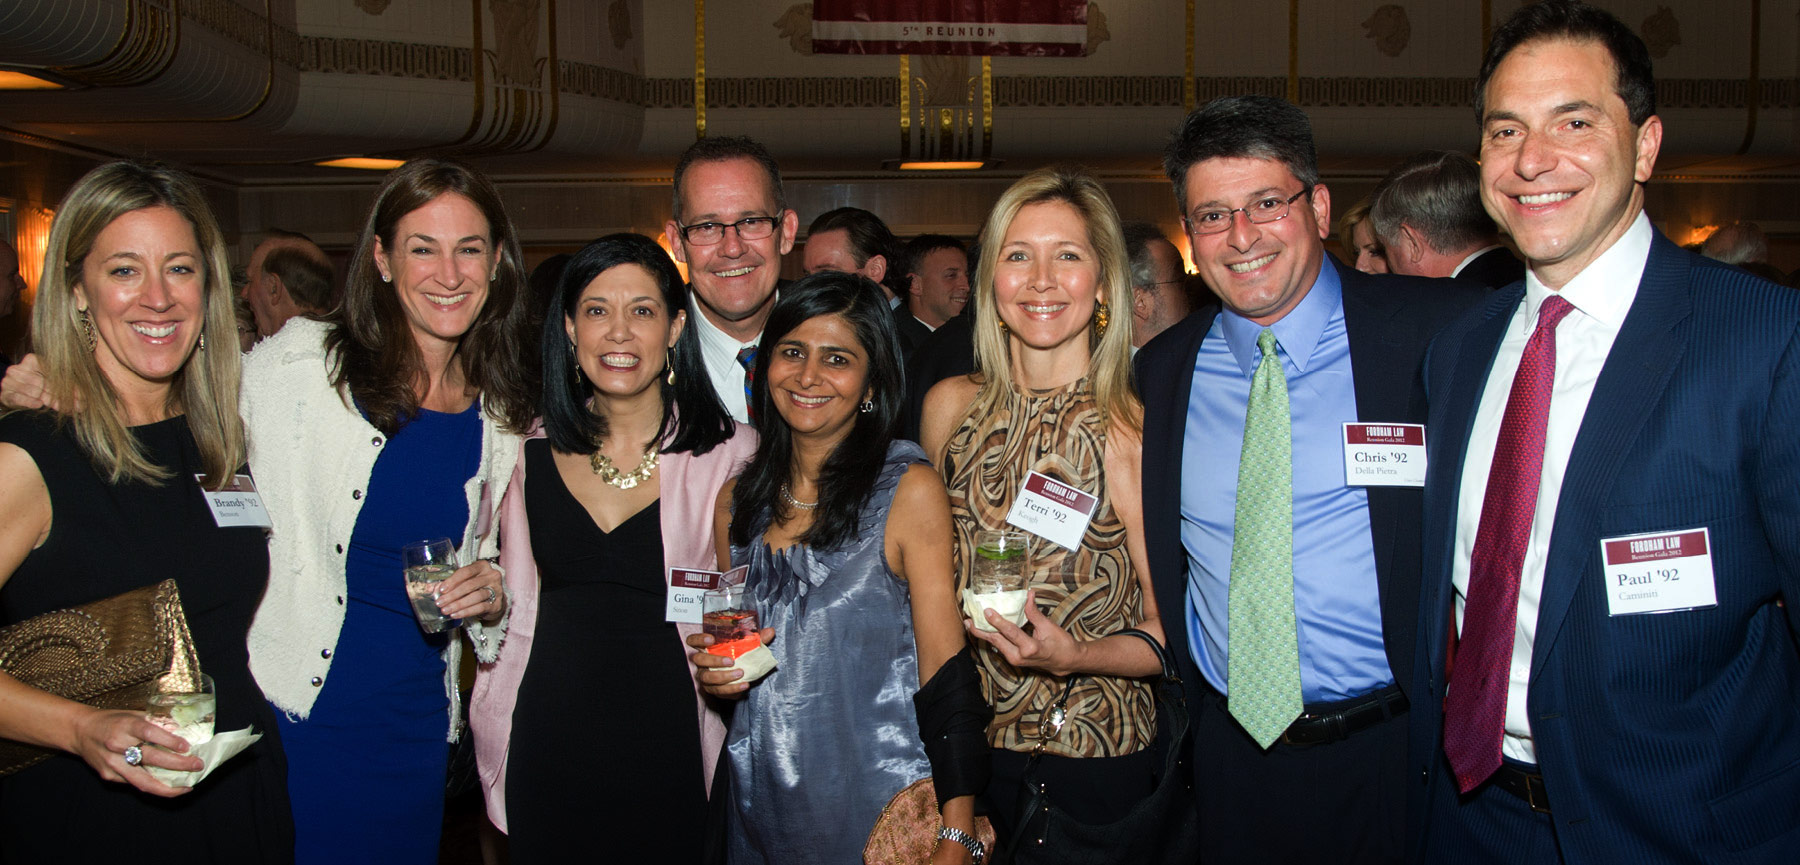 Class of 1992 at the Fordham Law Alumni Association Reunion